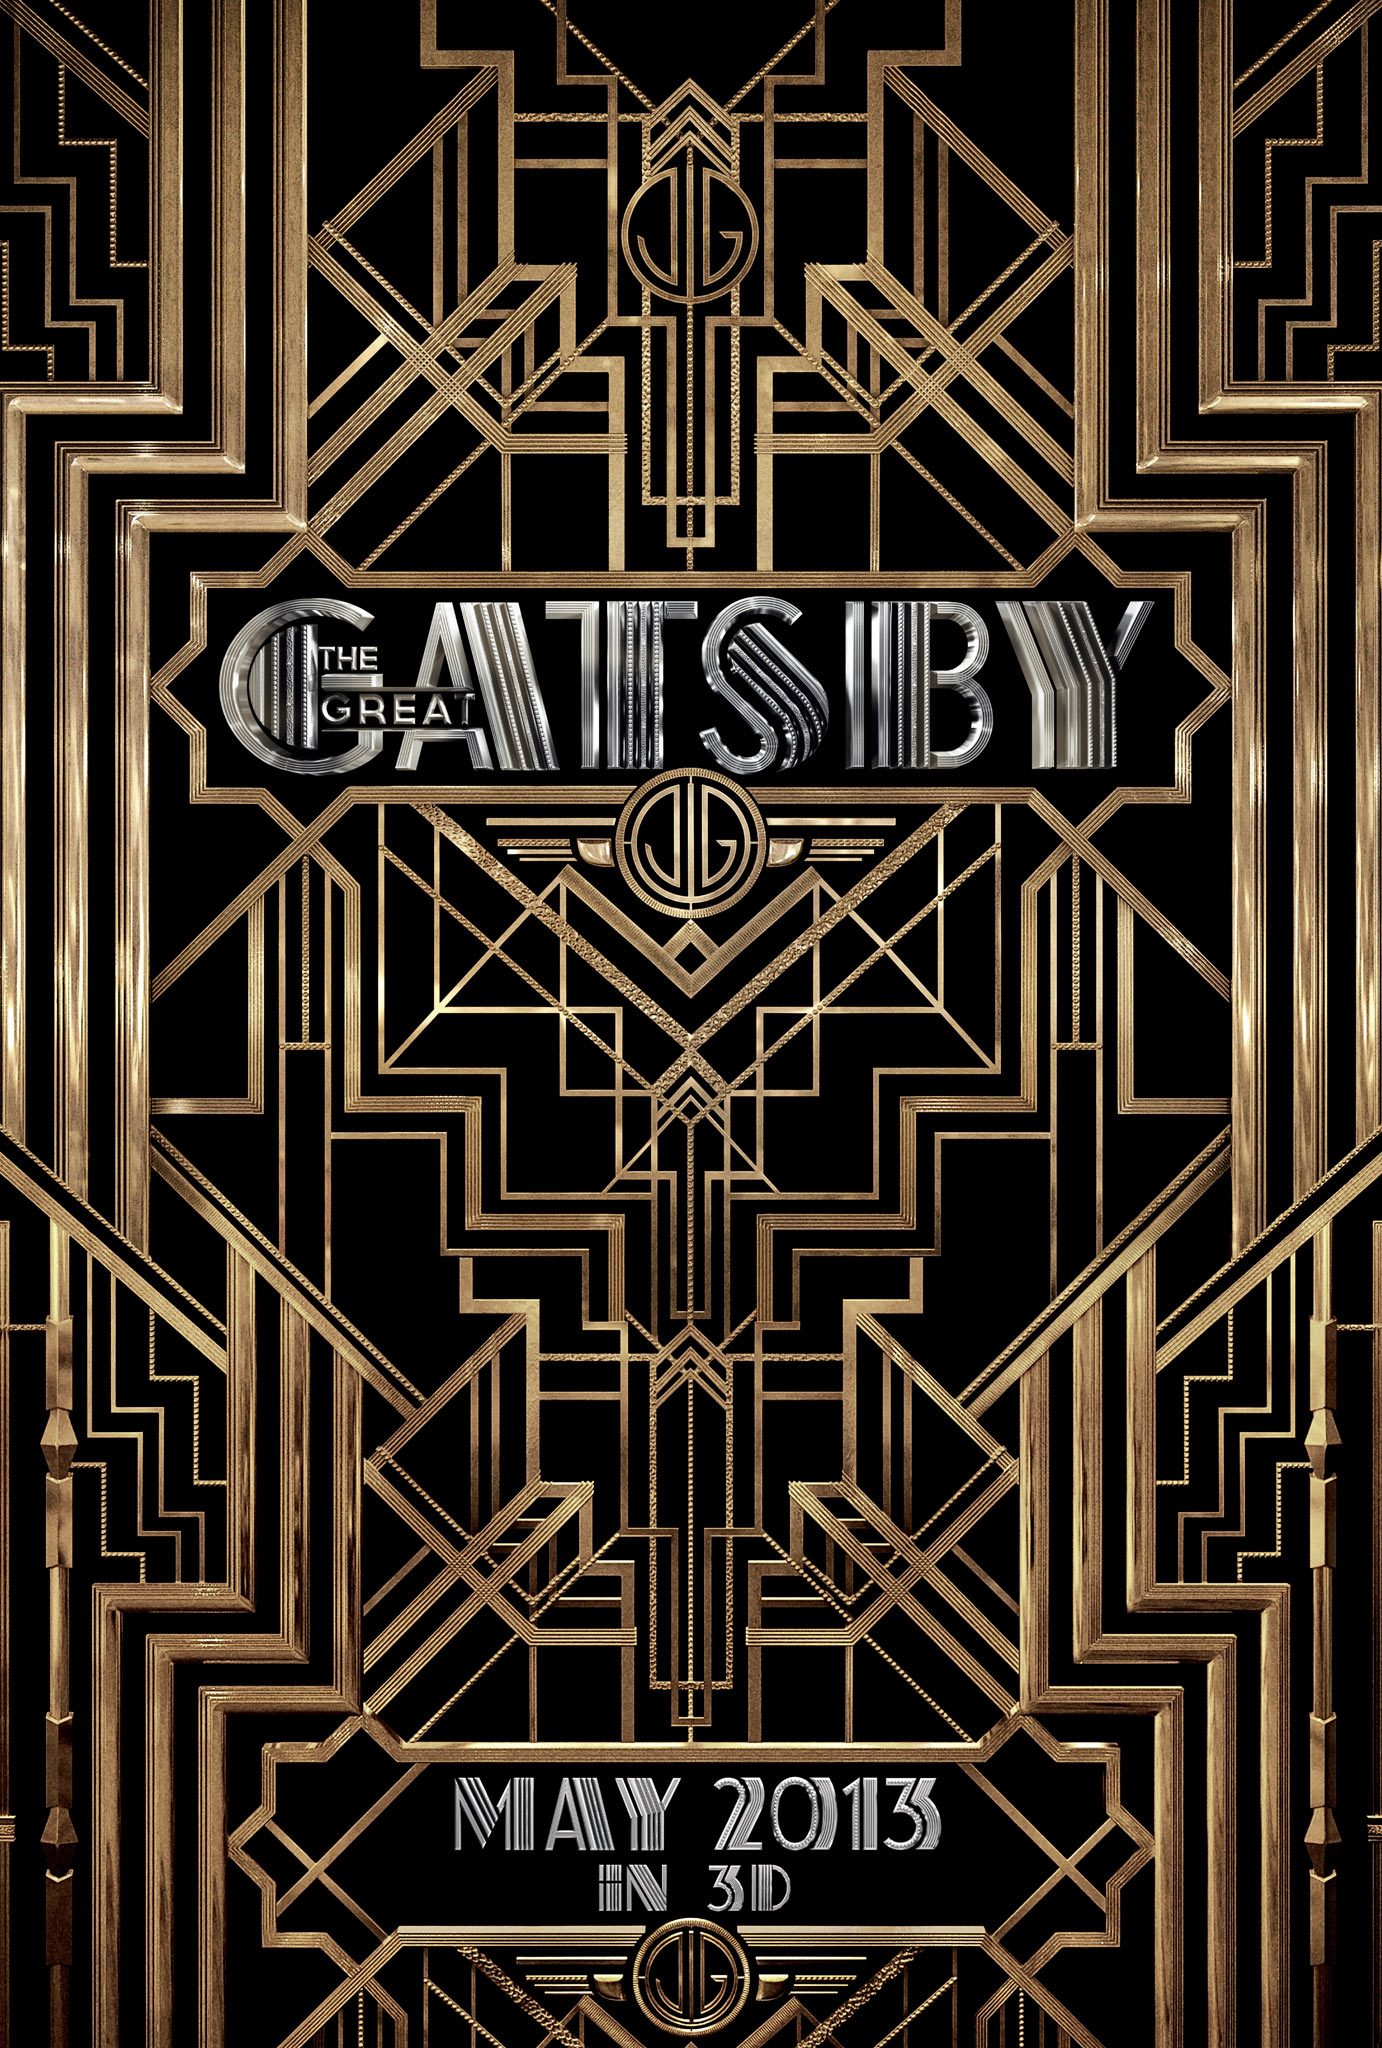 The Great Gatsby - Movie Poster #2 (Original)